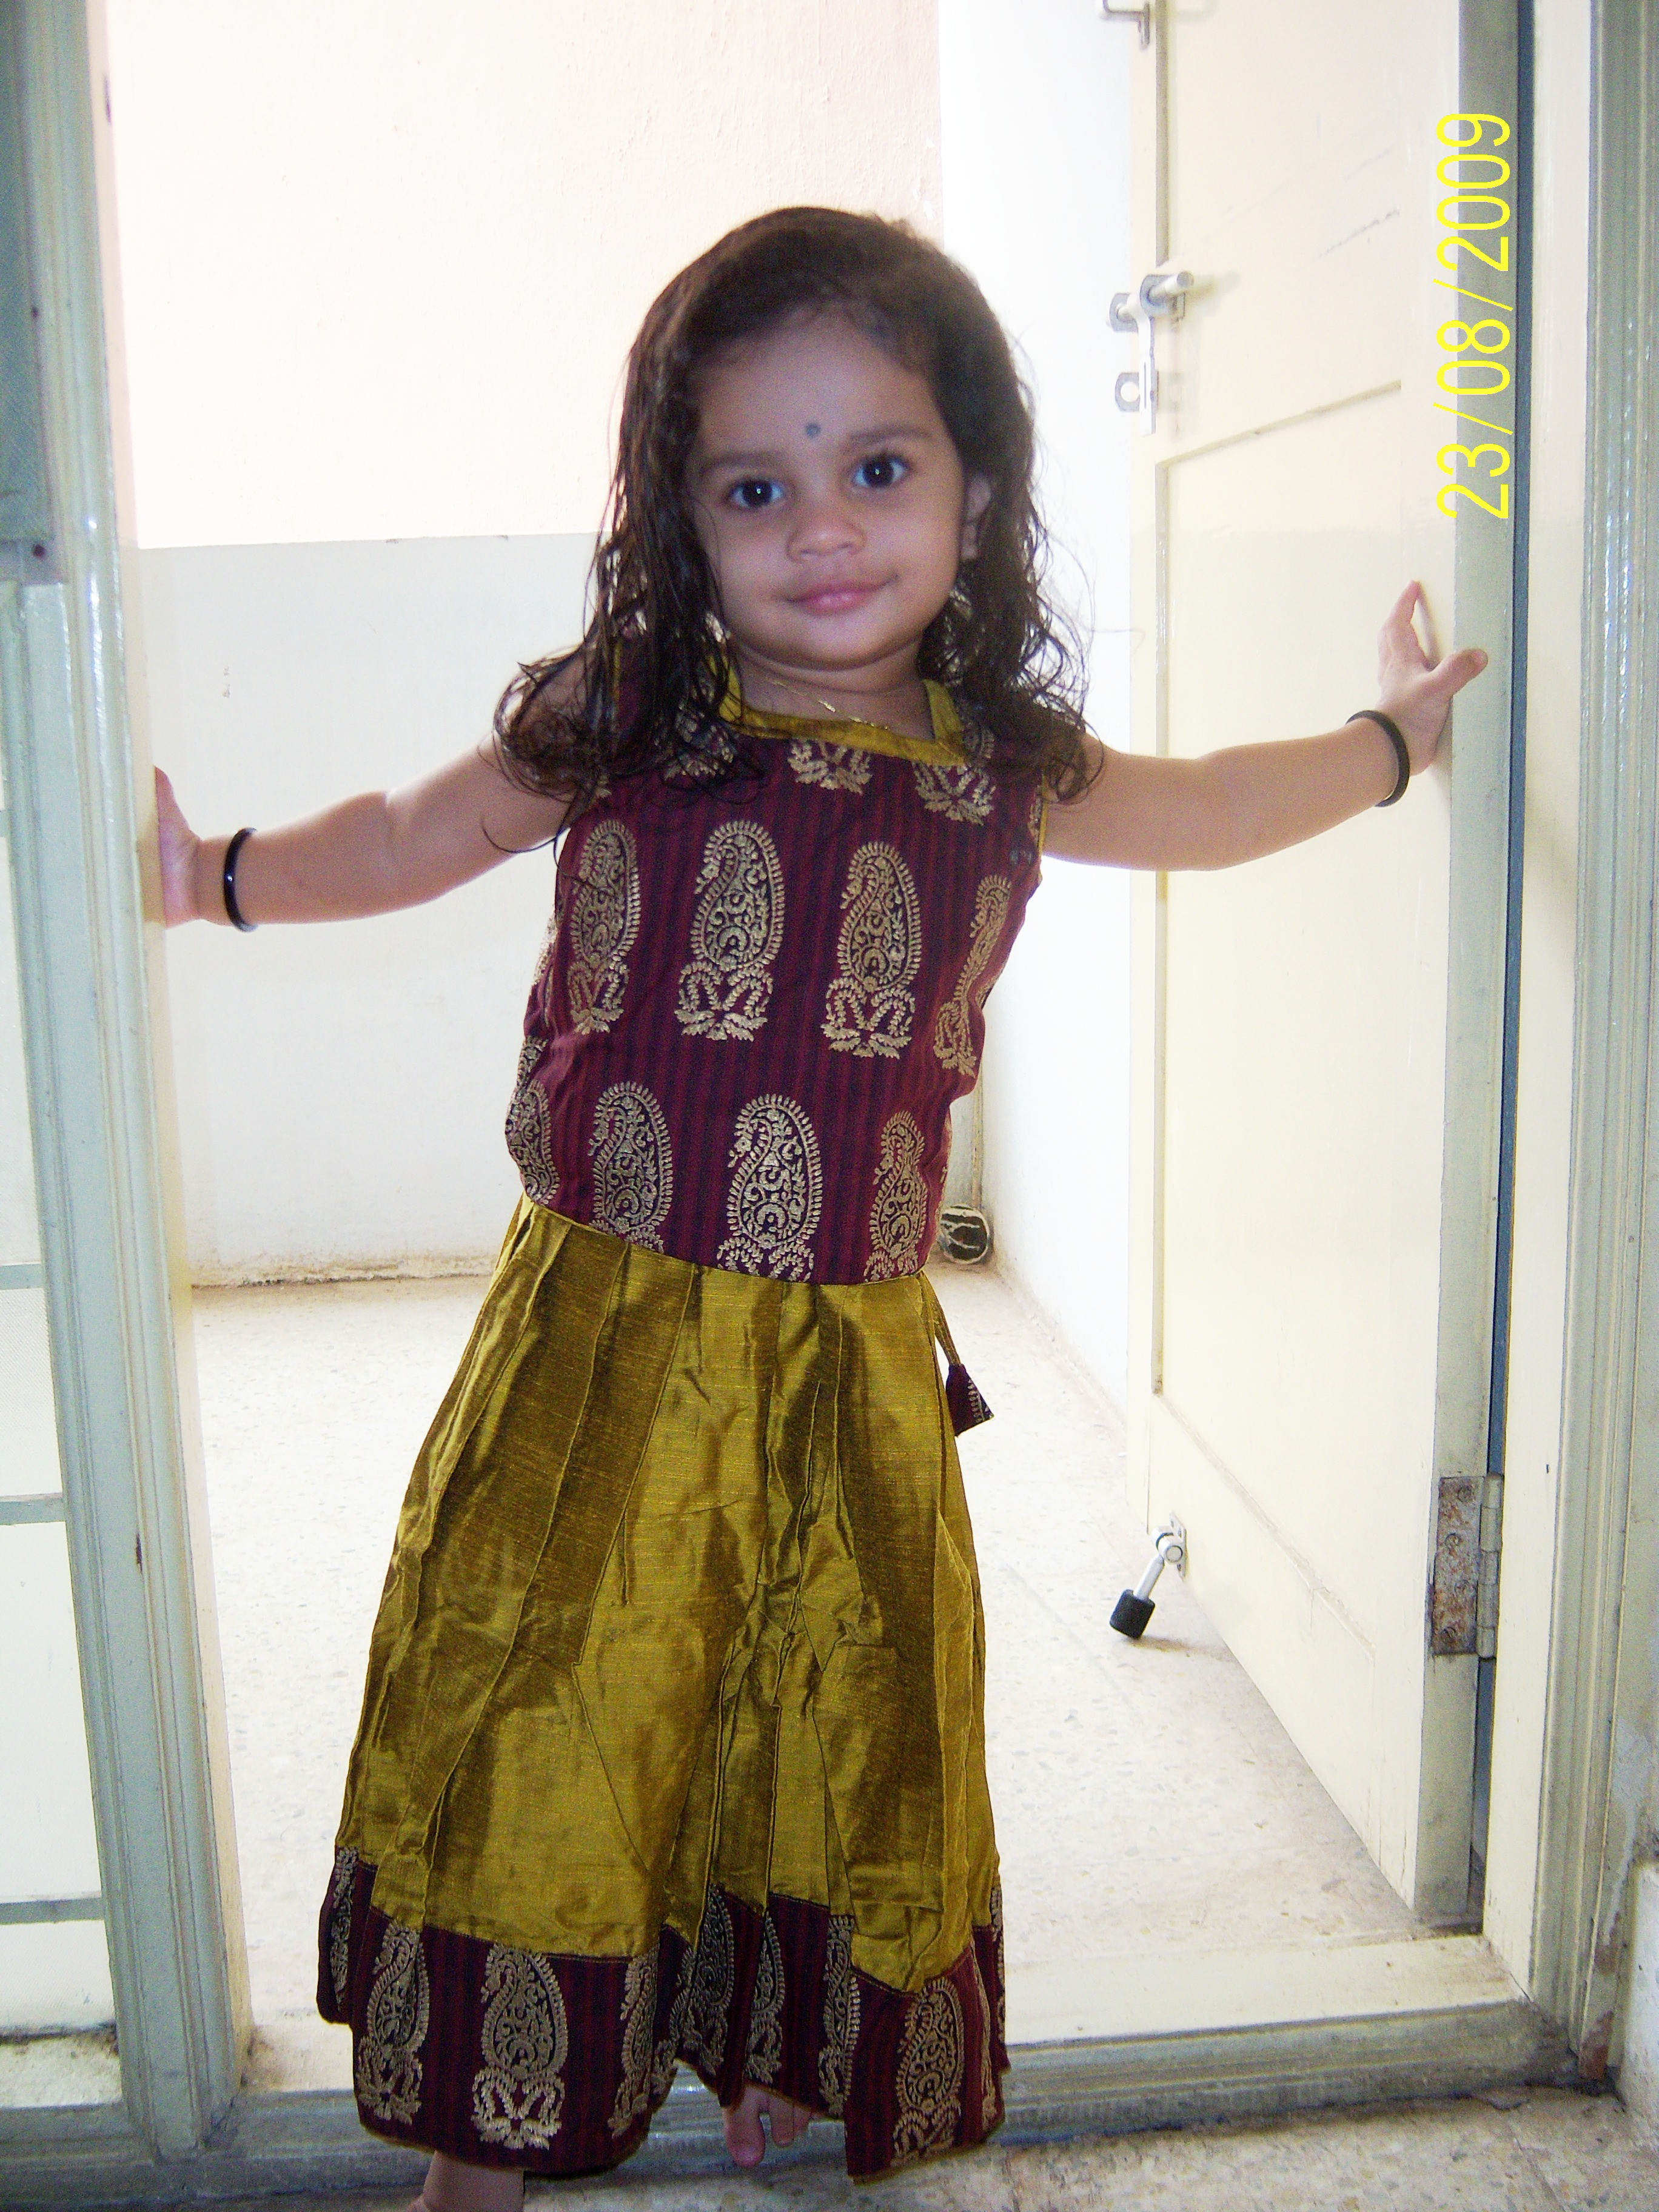 100_0898.JPG - Don't I look like a traditional Indian baby should on Diwali?